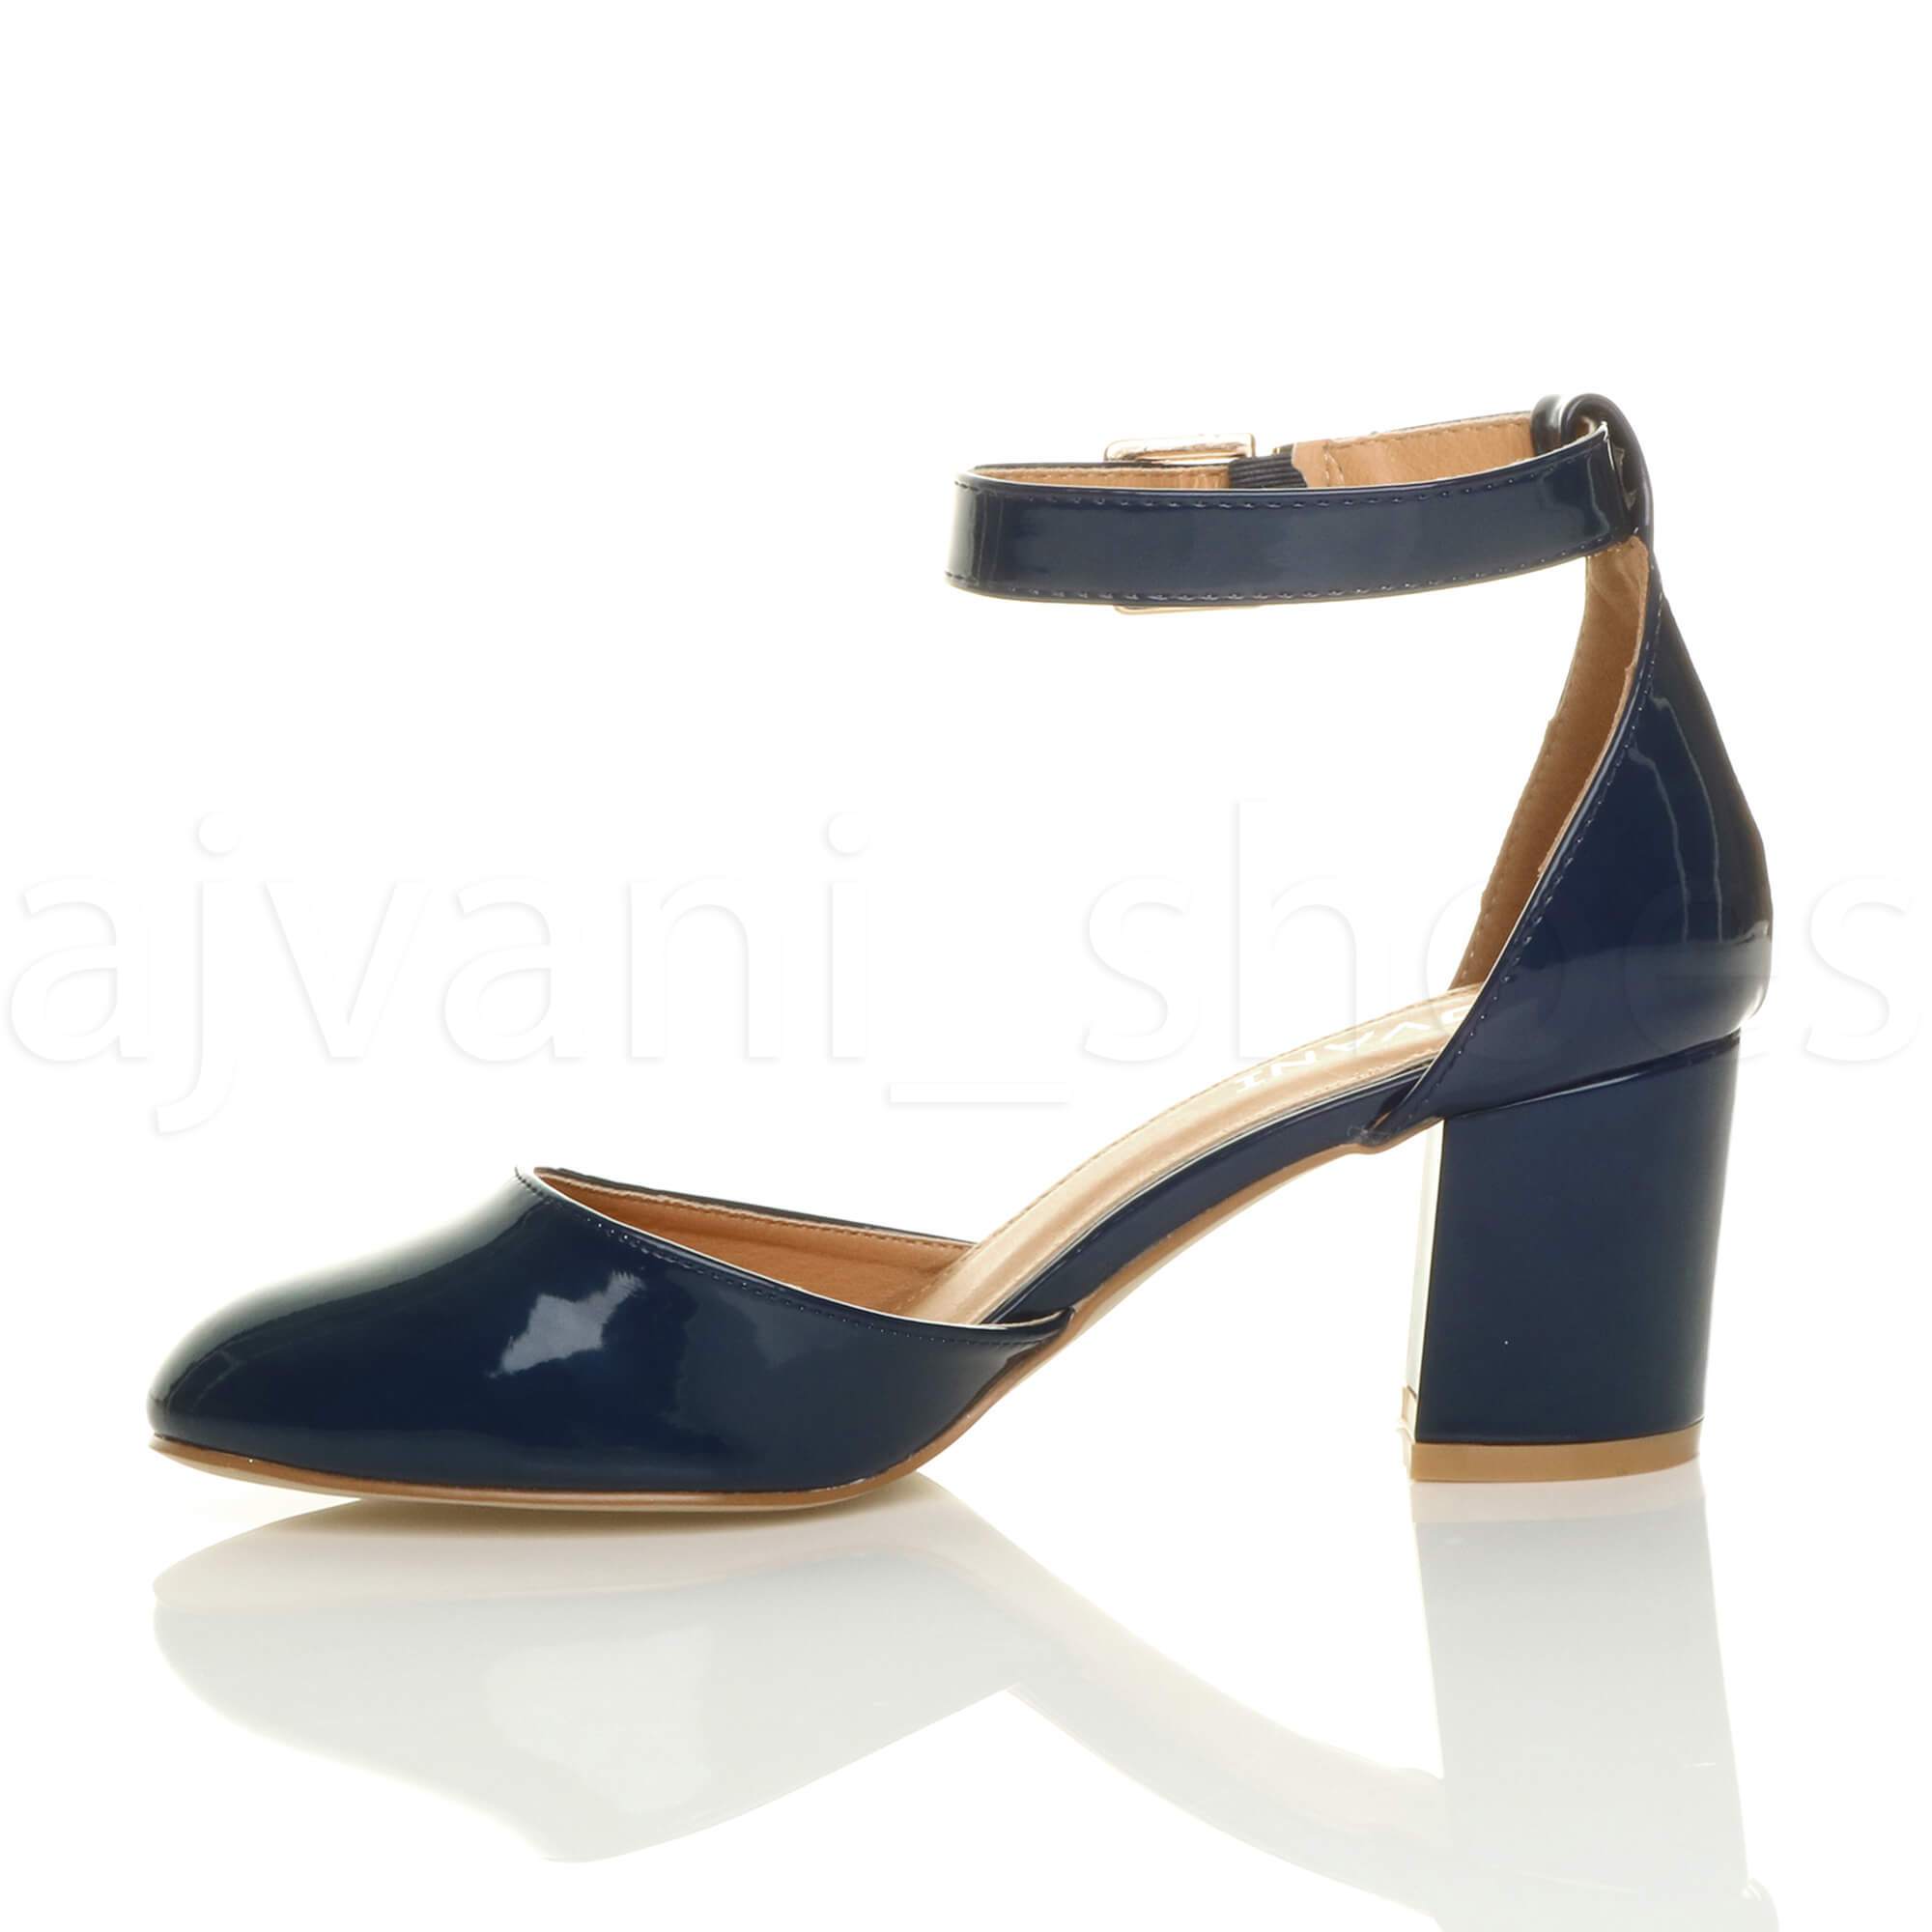 WOMENS-LADIES-LOW-MID-BLOCK-HEEL-ANKLE-STRAP-MARY-JANE-COURT-SHOES-SANDALS-SIZE thumbnail 100